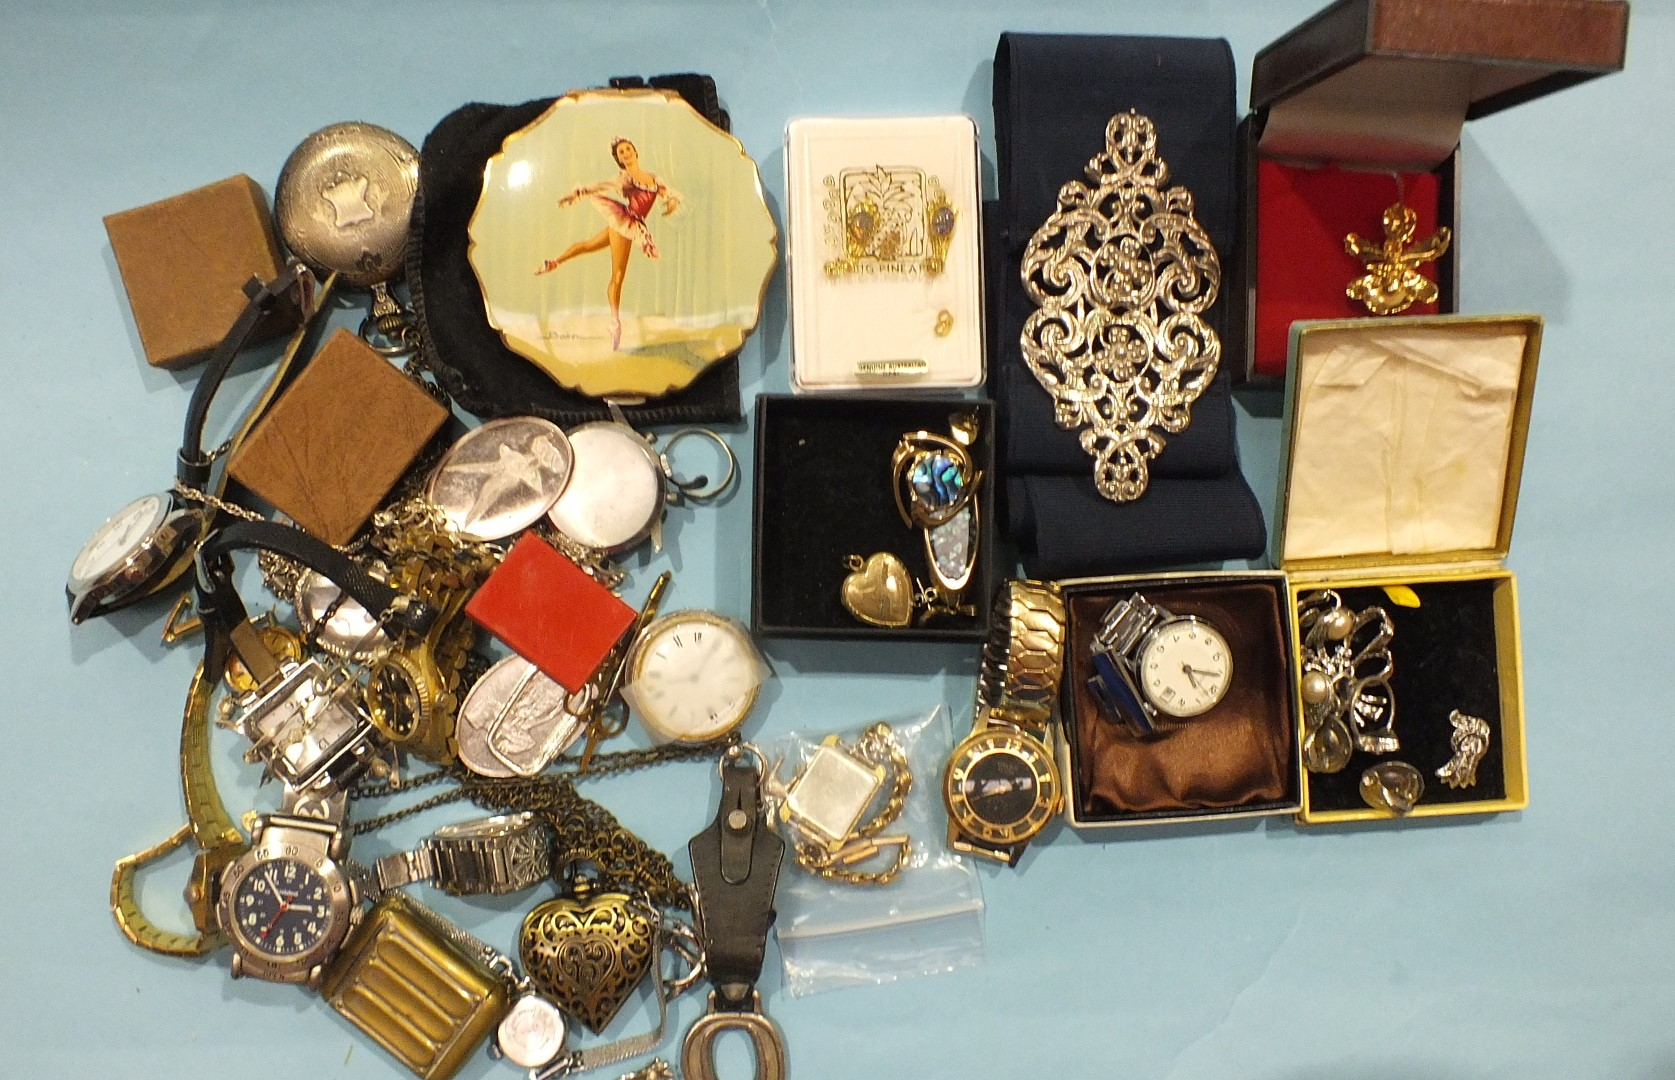 Lot 188 - A nurse's silver belt buckle, London 1979, and a quantity of watches and costume jewellery.